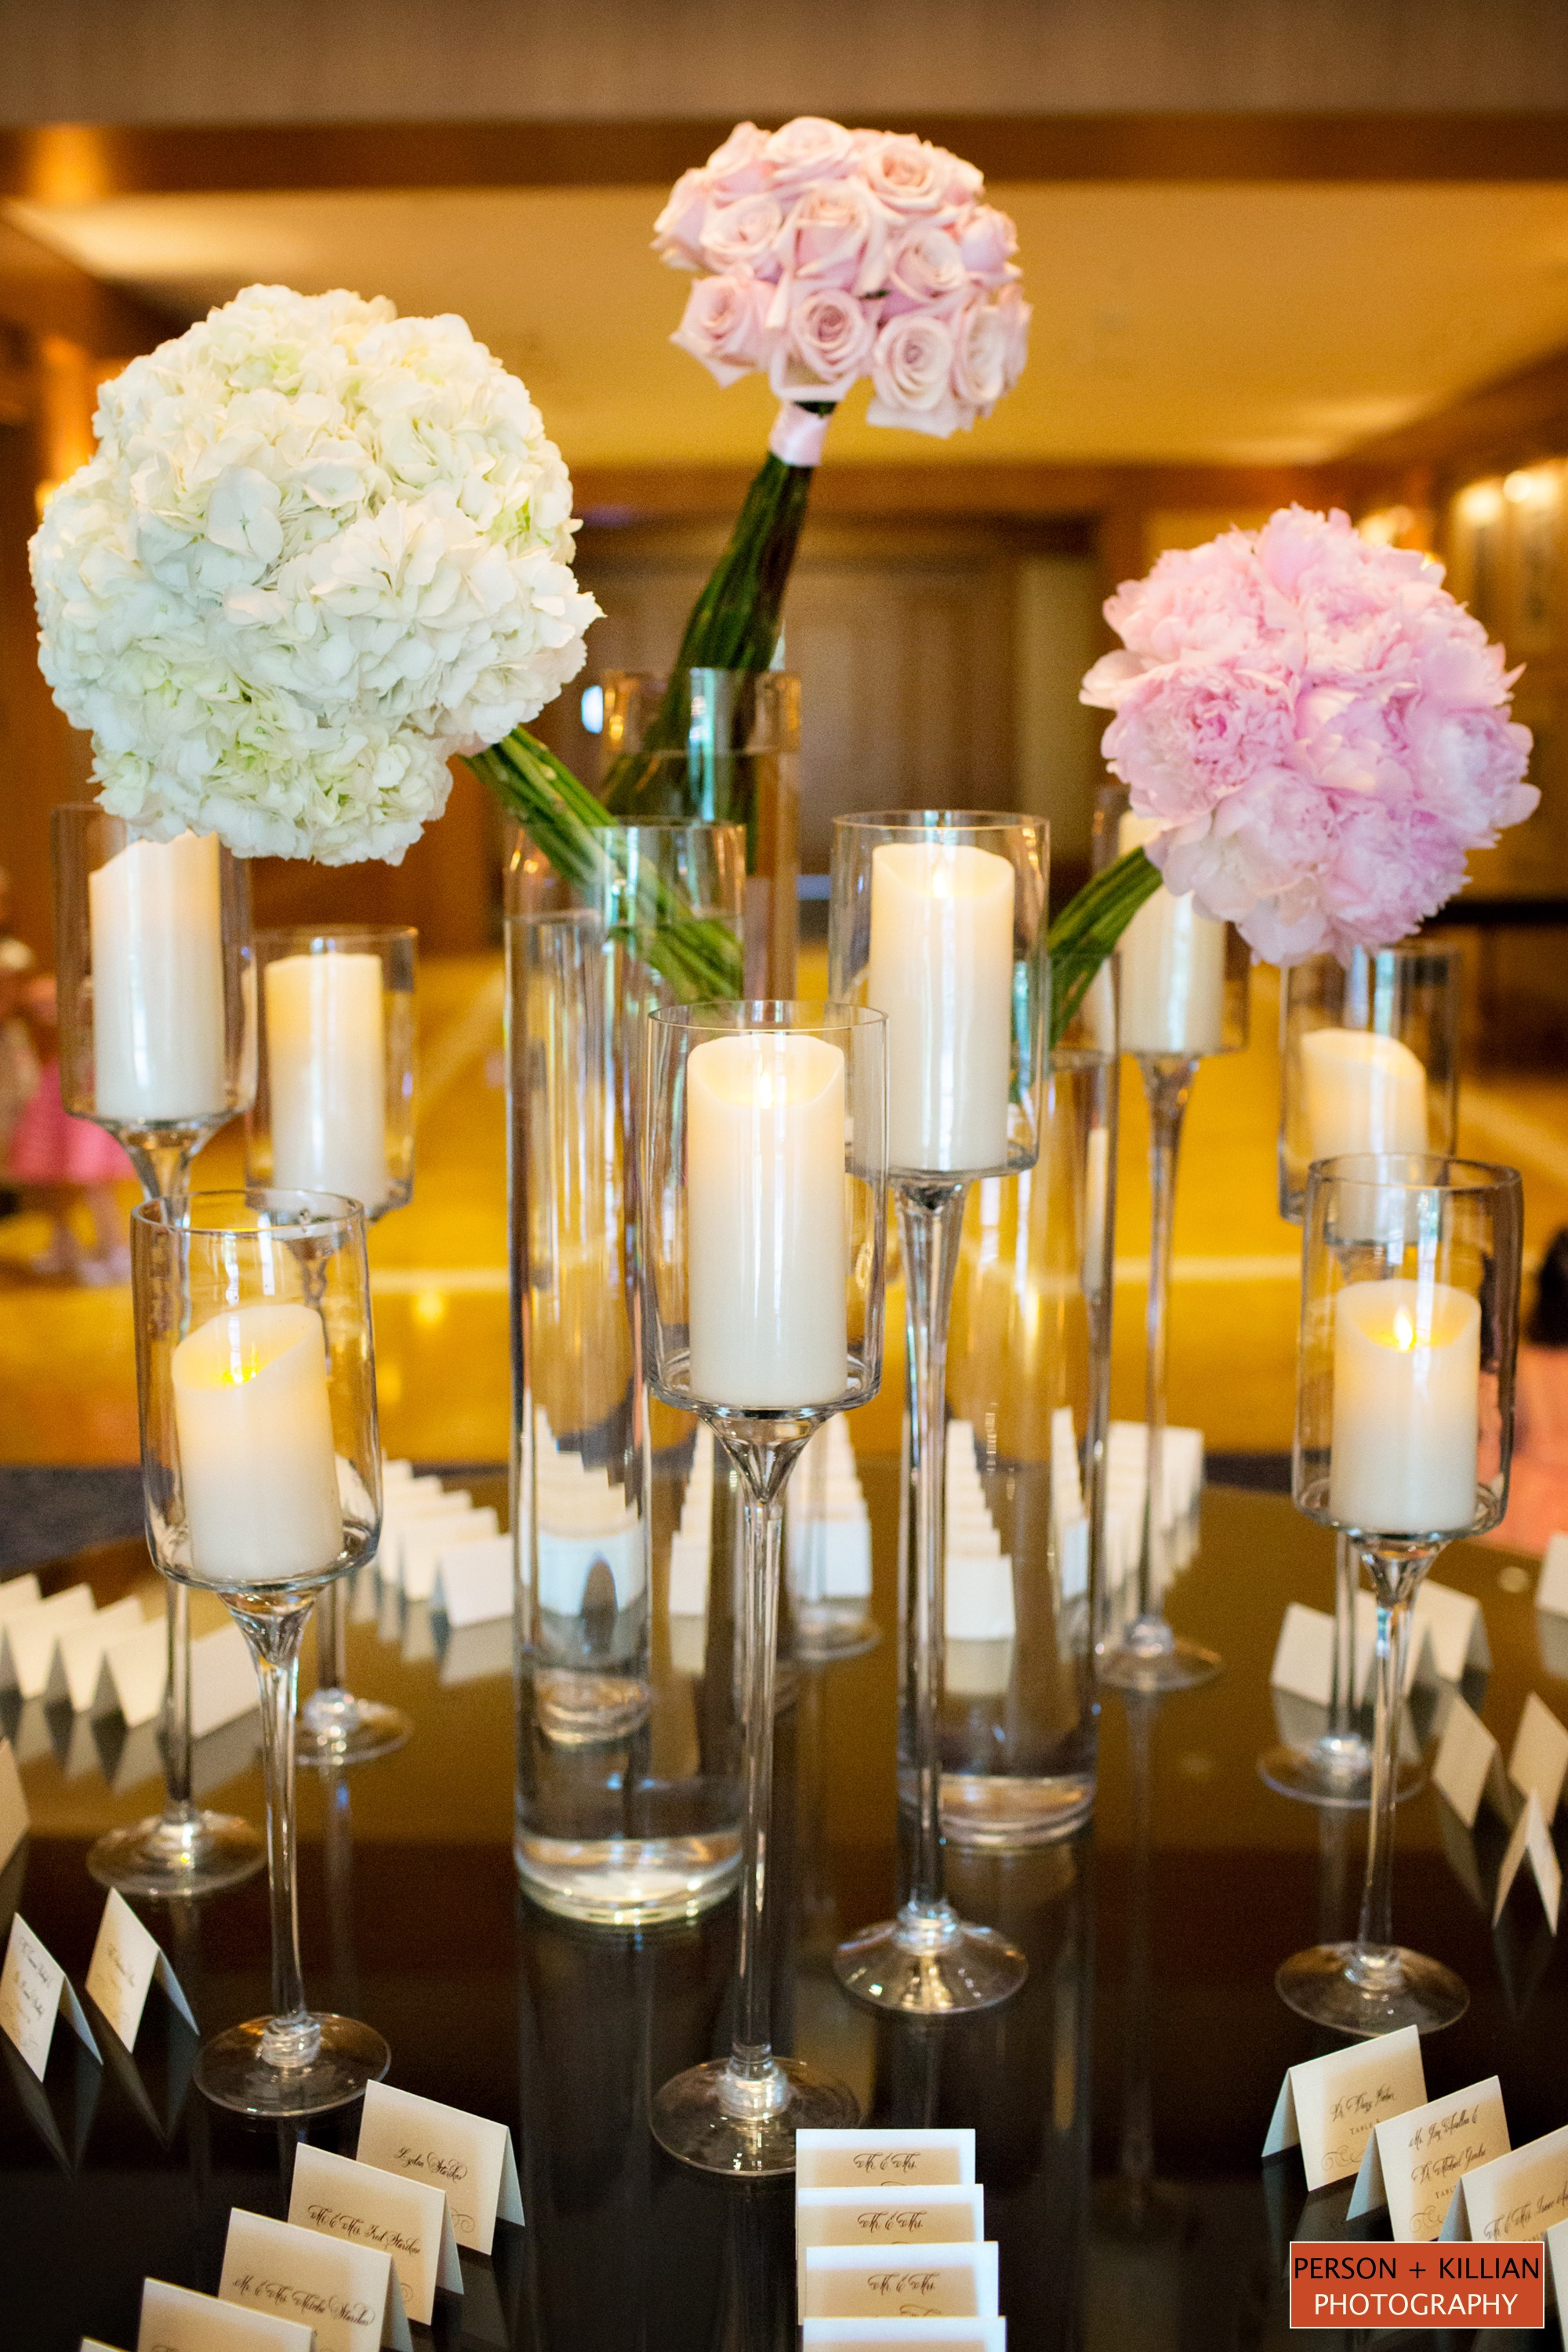 flou(e)r_specialty_floral_events_wedding_flowers